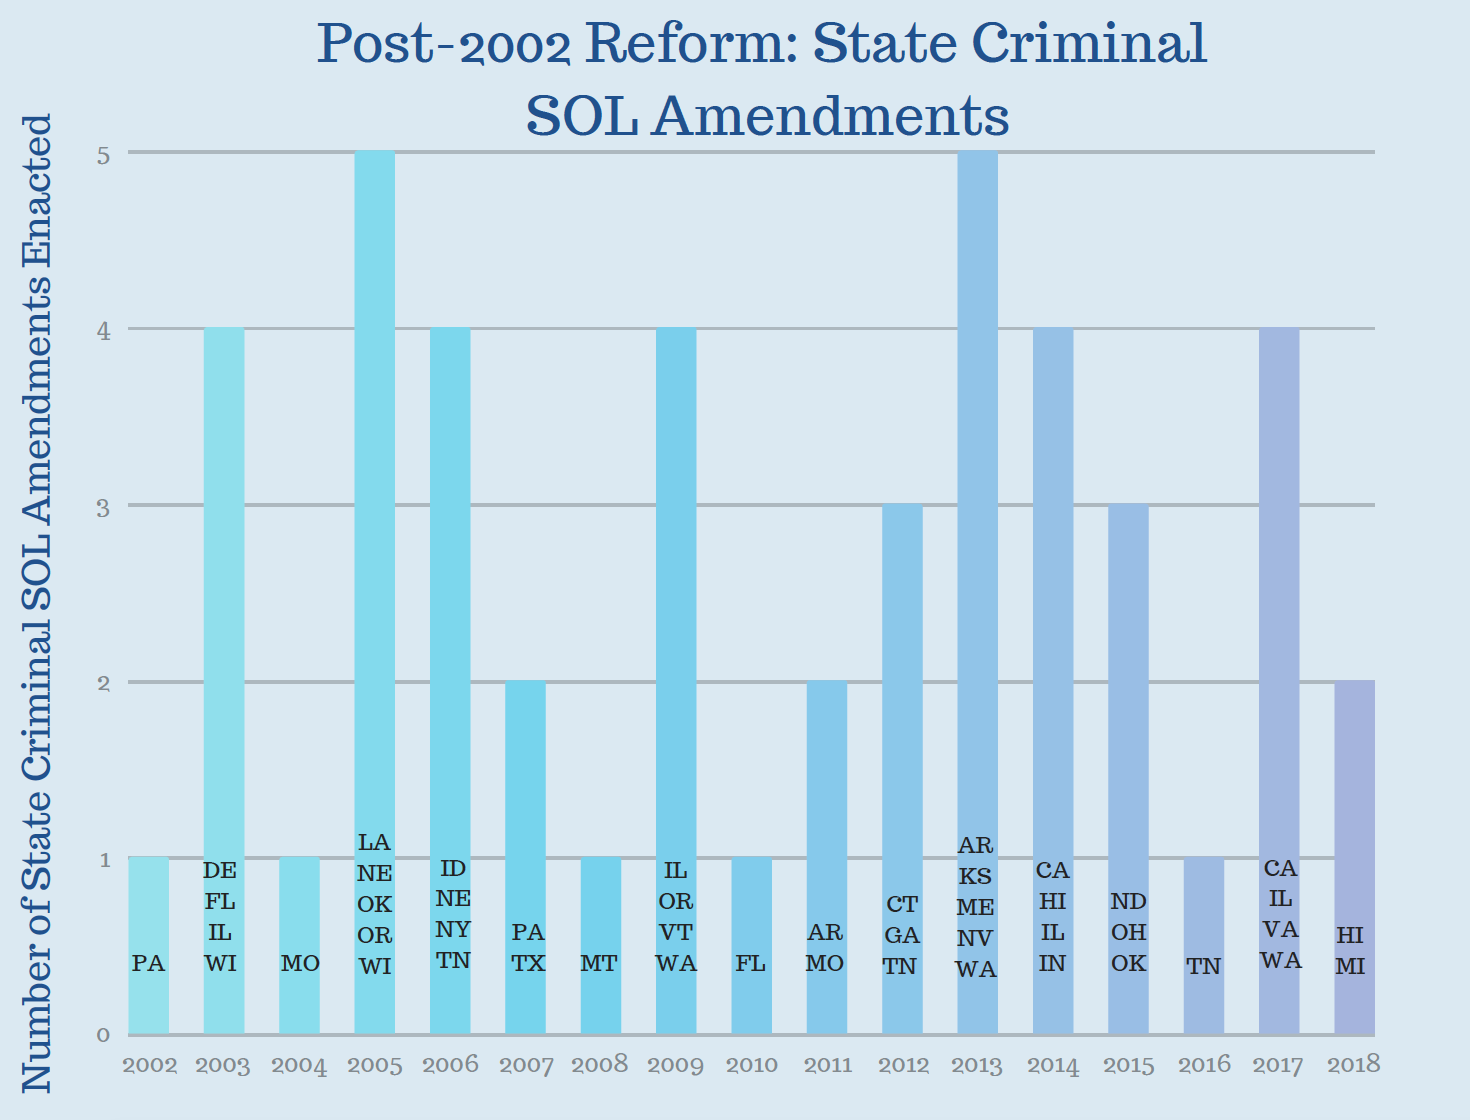 Post- 2002 Reform state criminal sol amendments.png